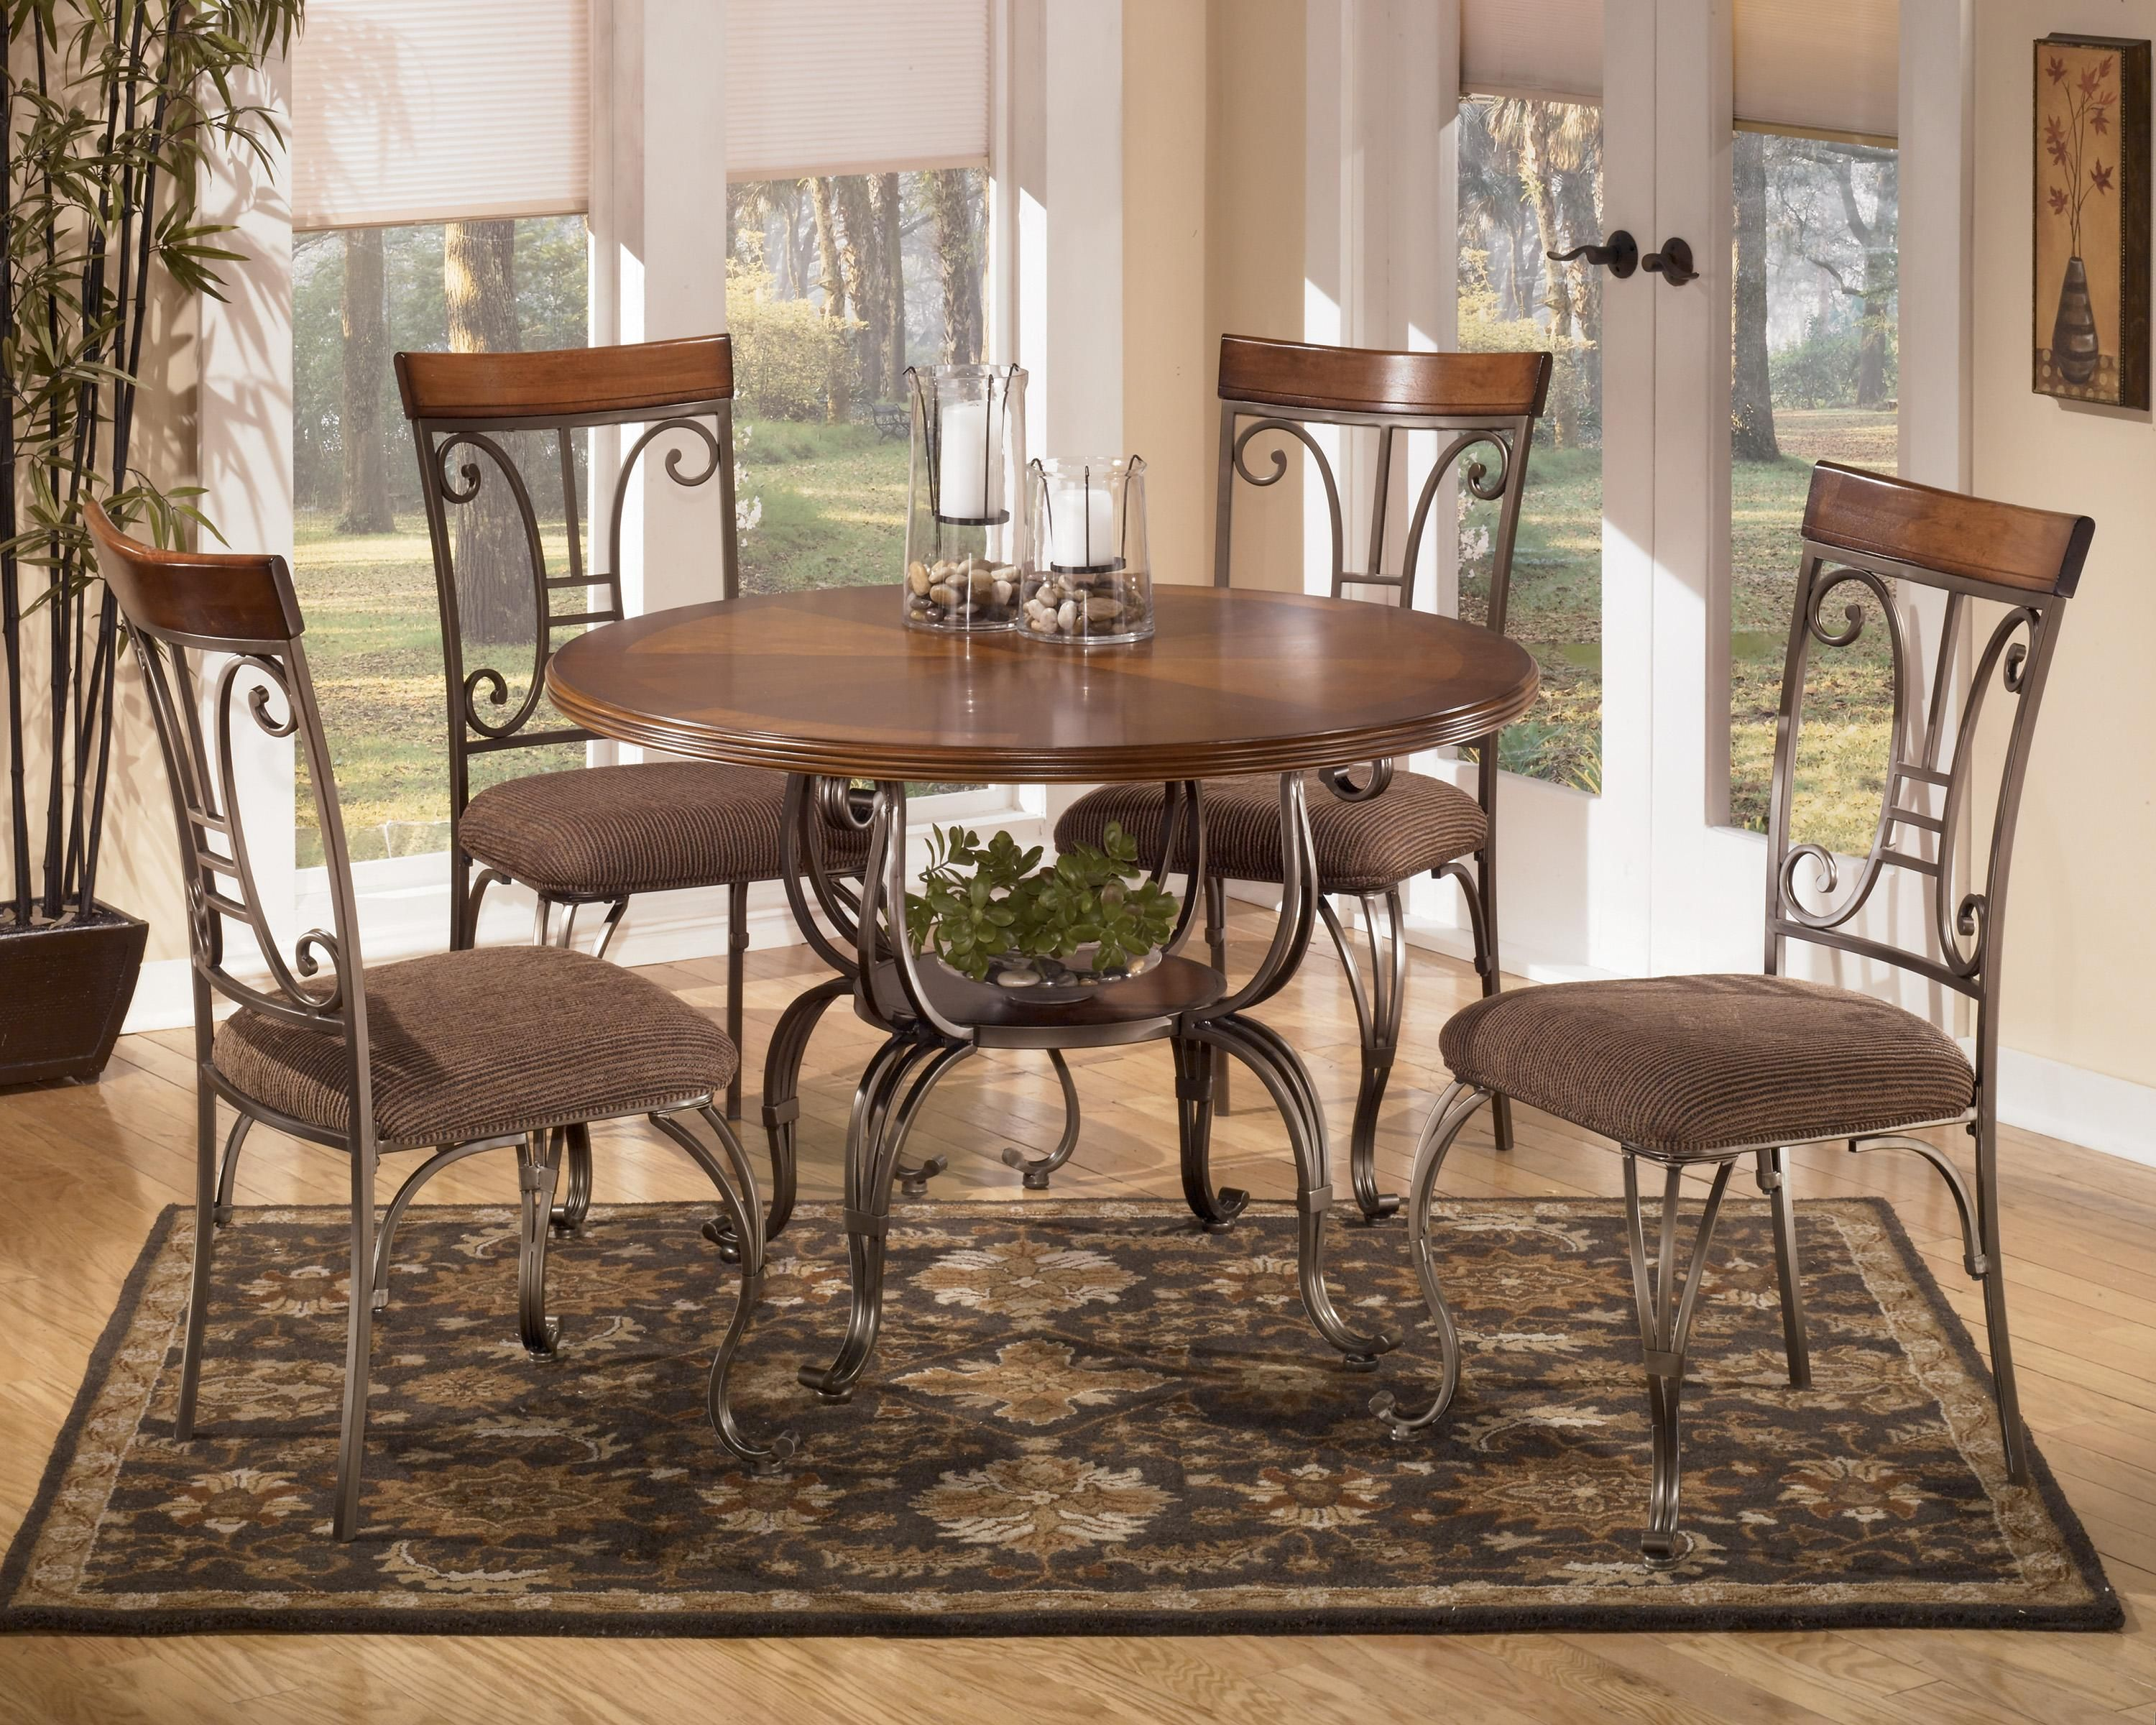 Plentywood 5Piece Round Dining Table Setsignature Design Inspiration Cheap Dining Room Chairs Inspiration Design